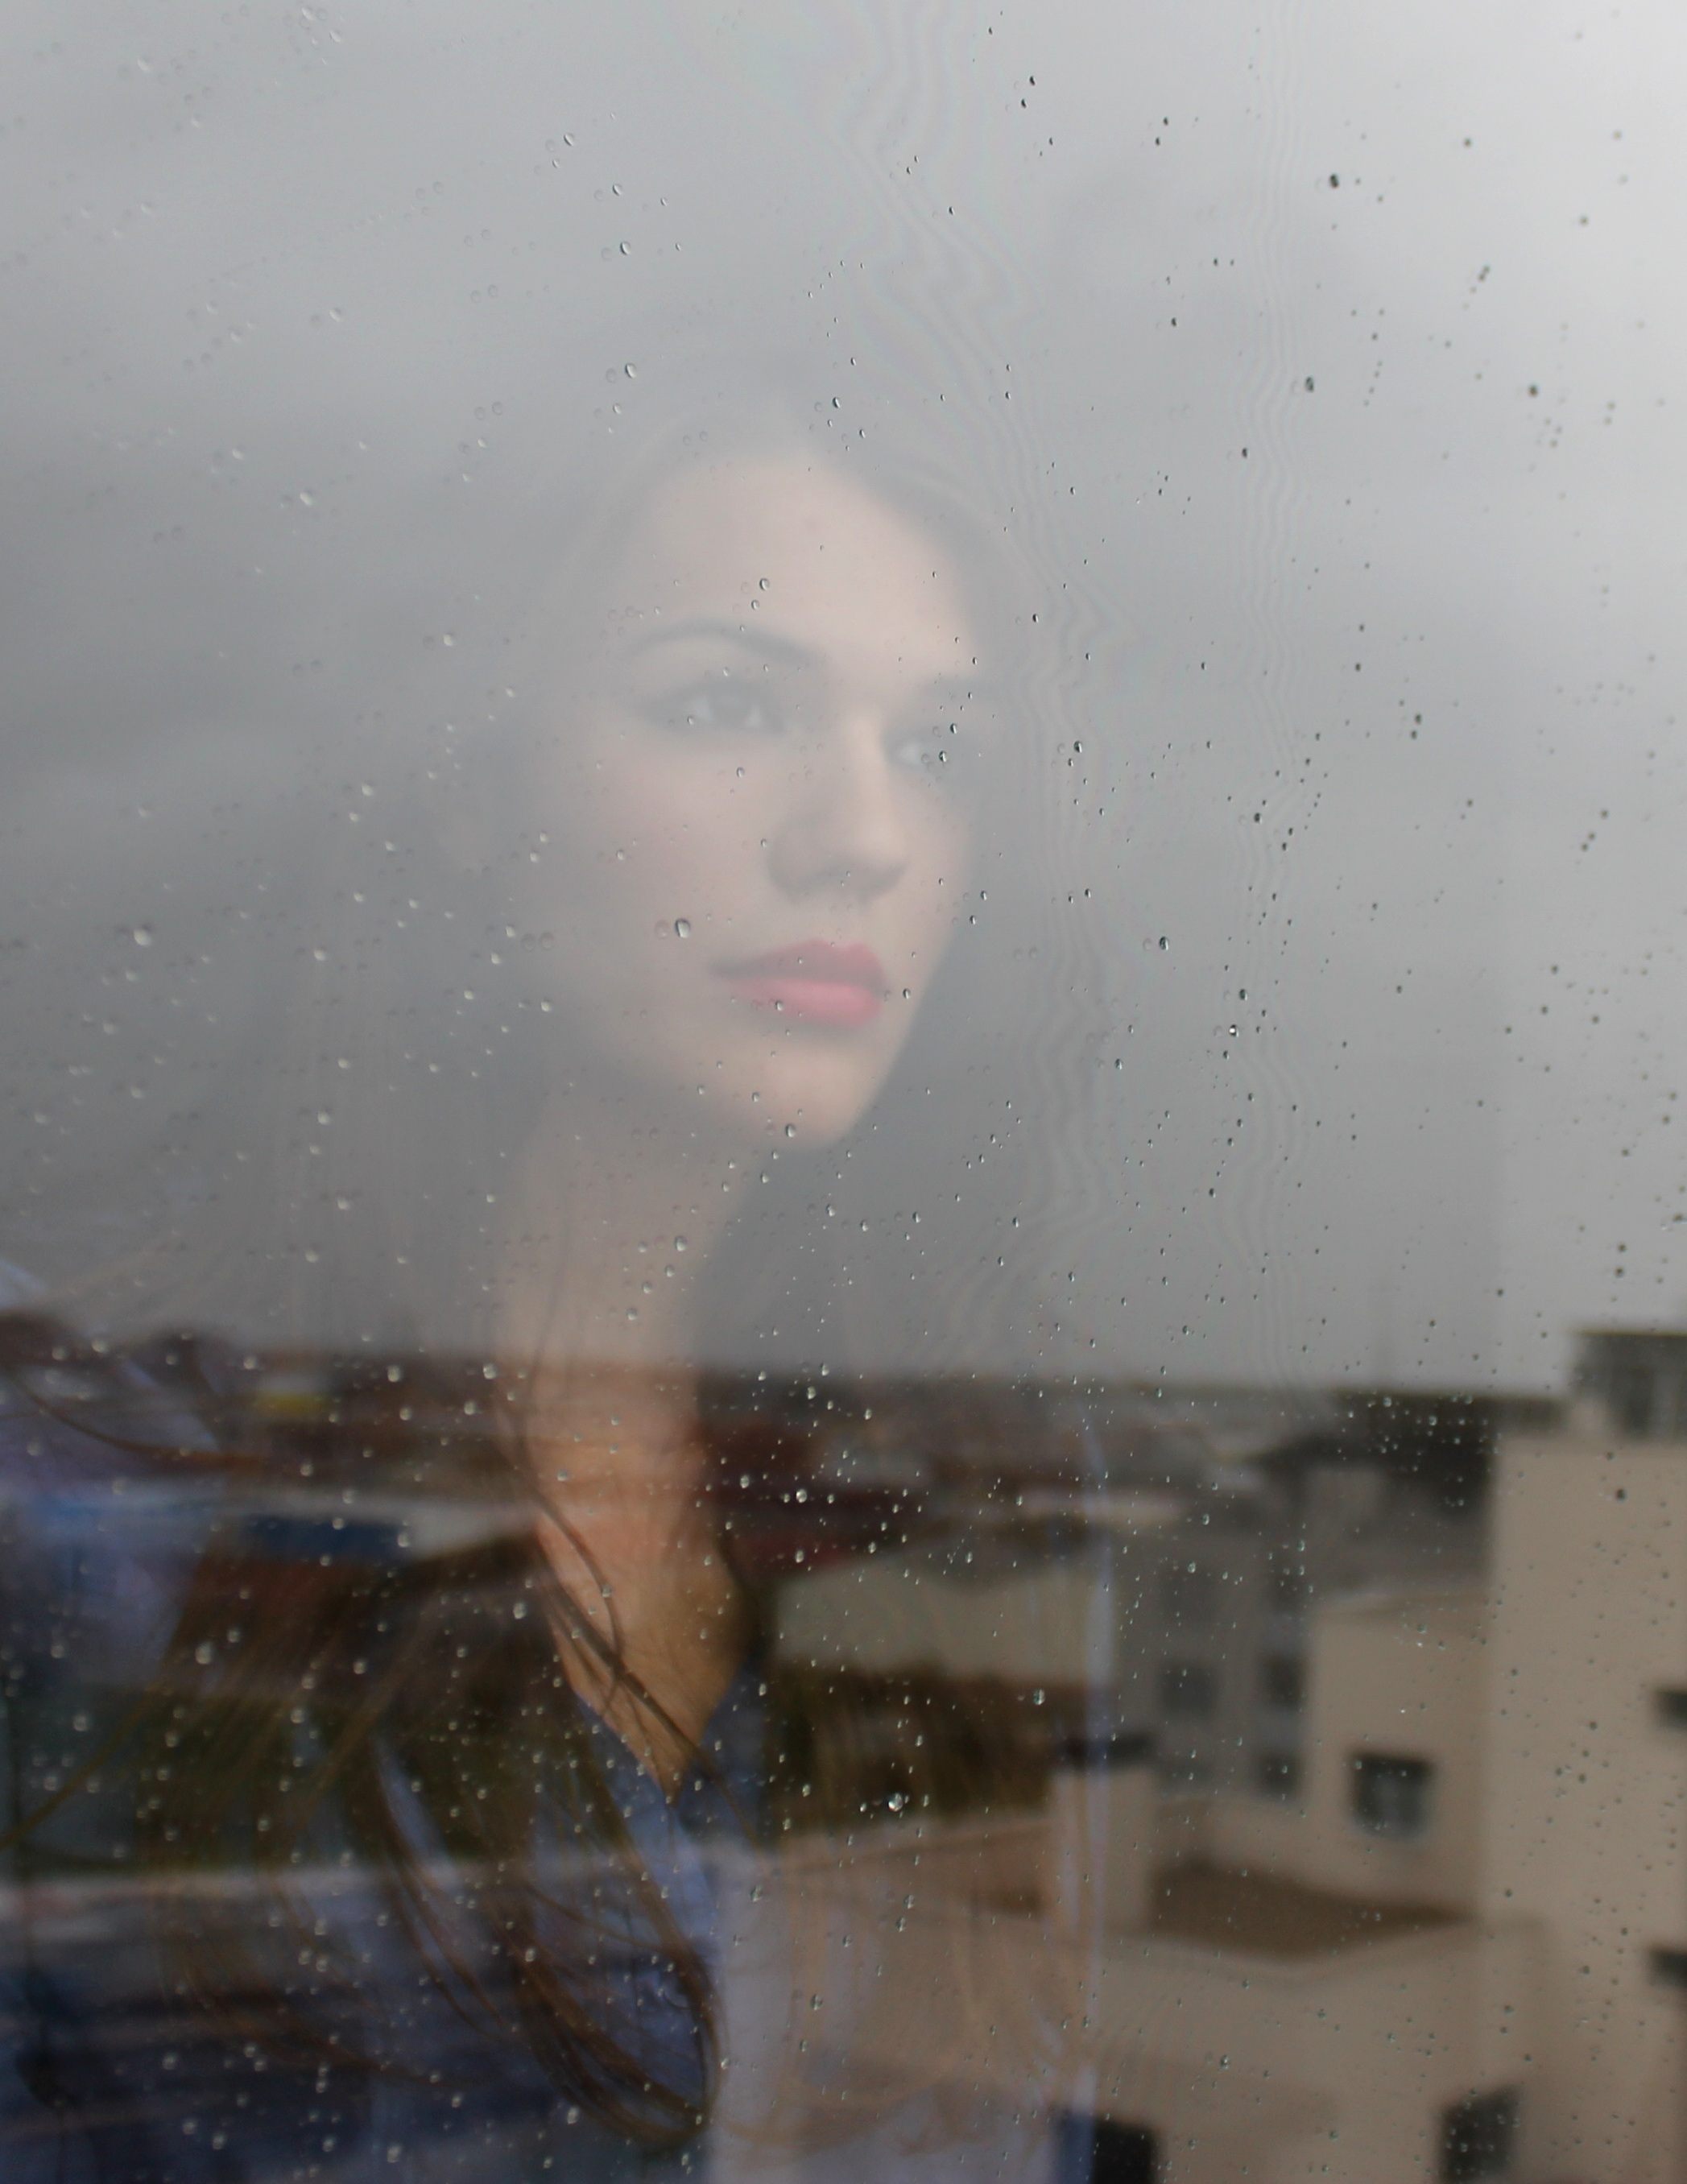 Girl behind glass, example of free images from Unsplash